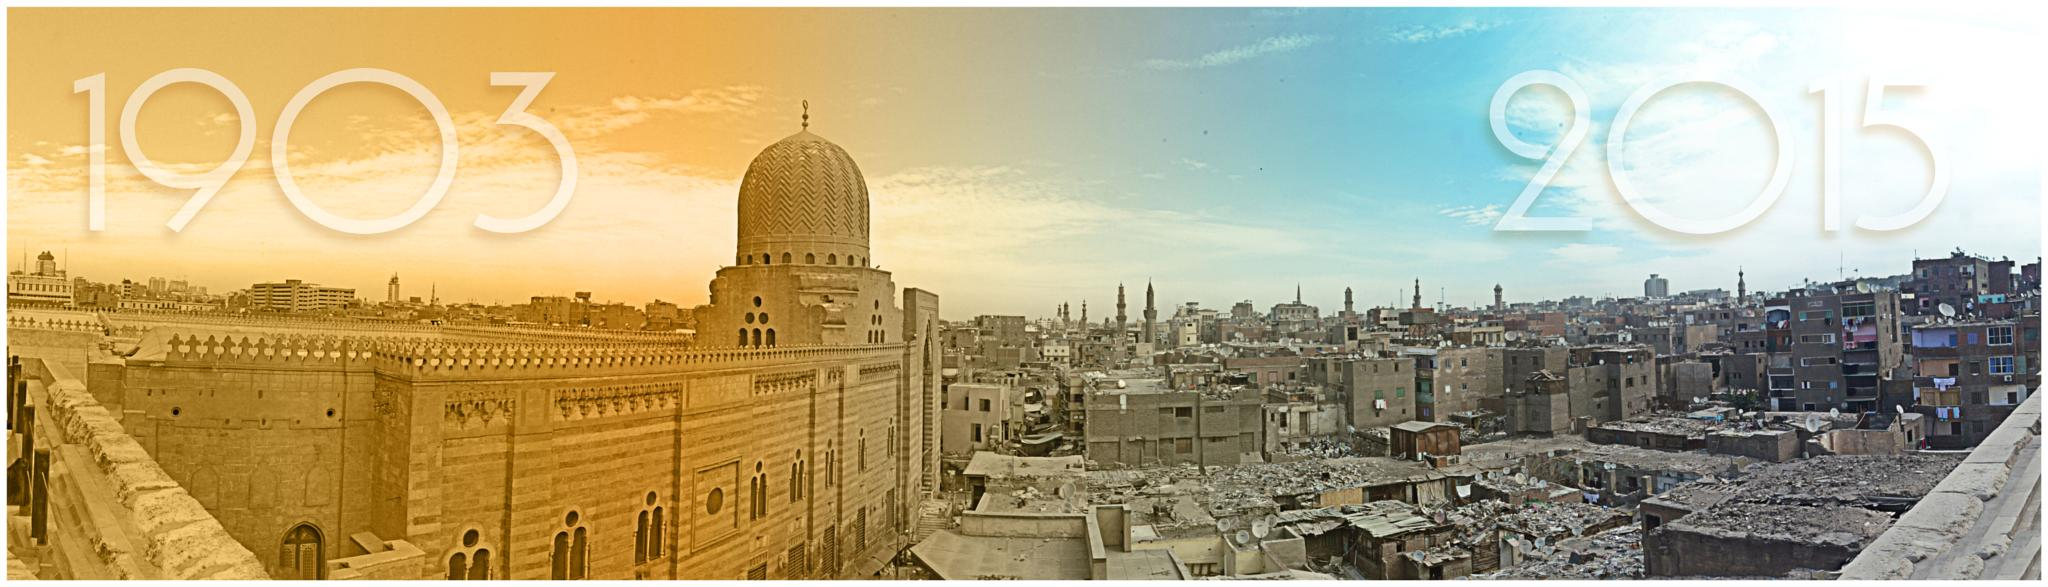 Egypt between the two dates by Wael Saeed